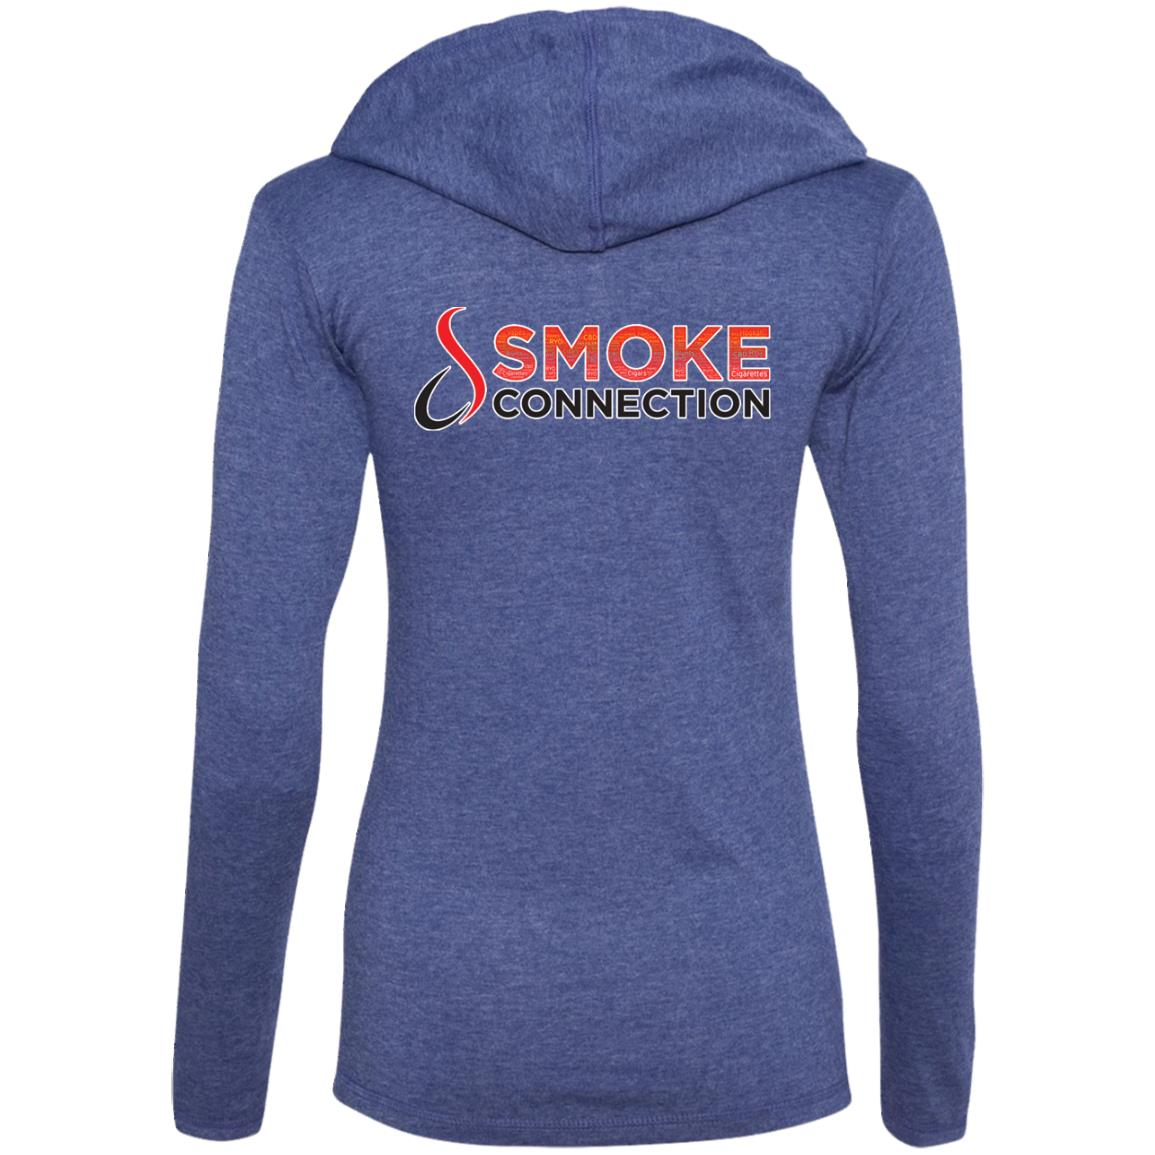 1LTHD4 Smoke Connection Ladies' LS T-Shirt Hoodie